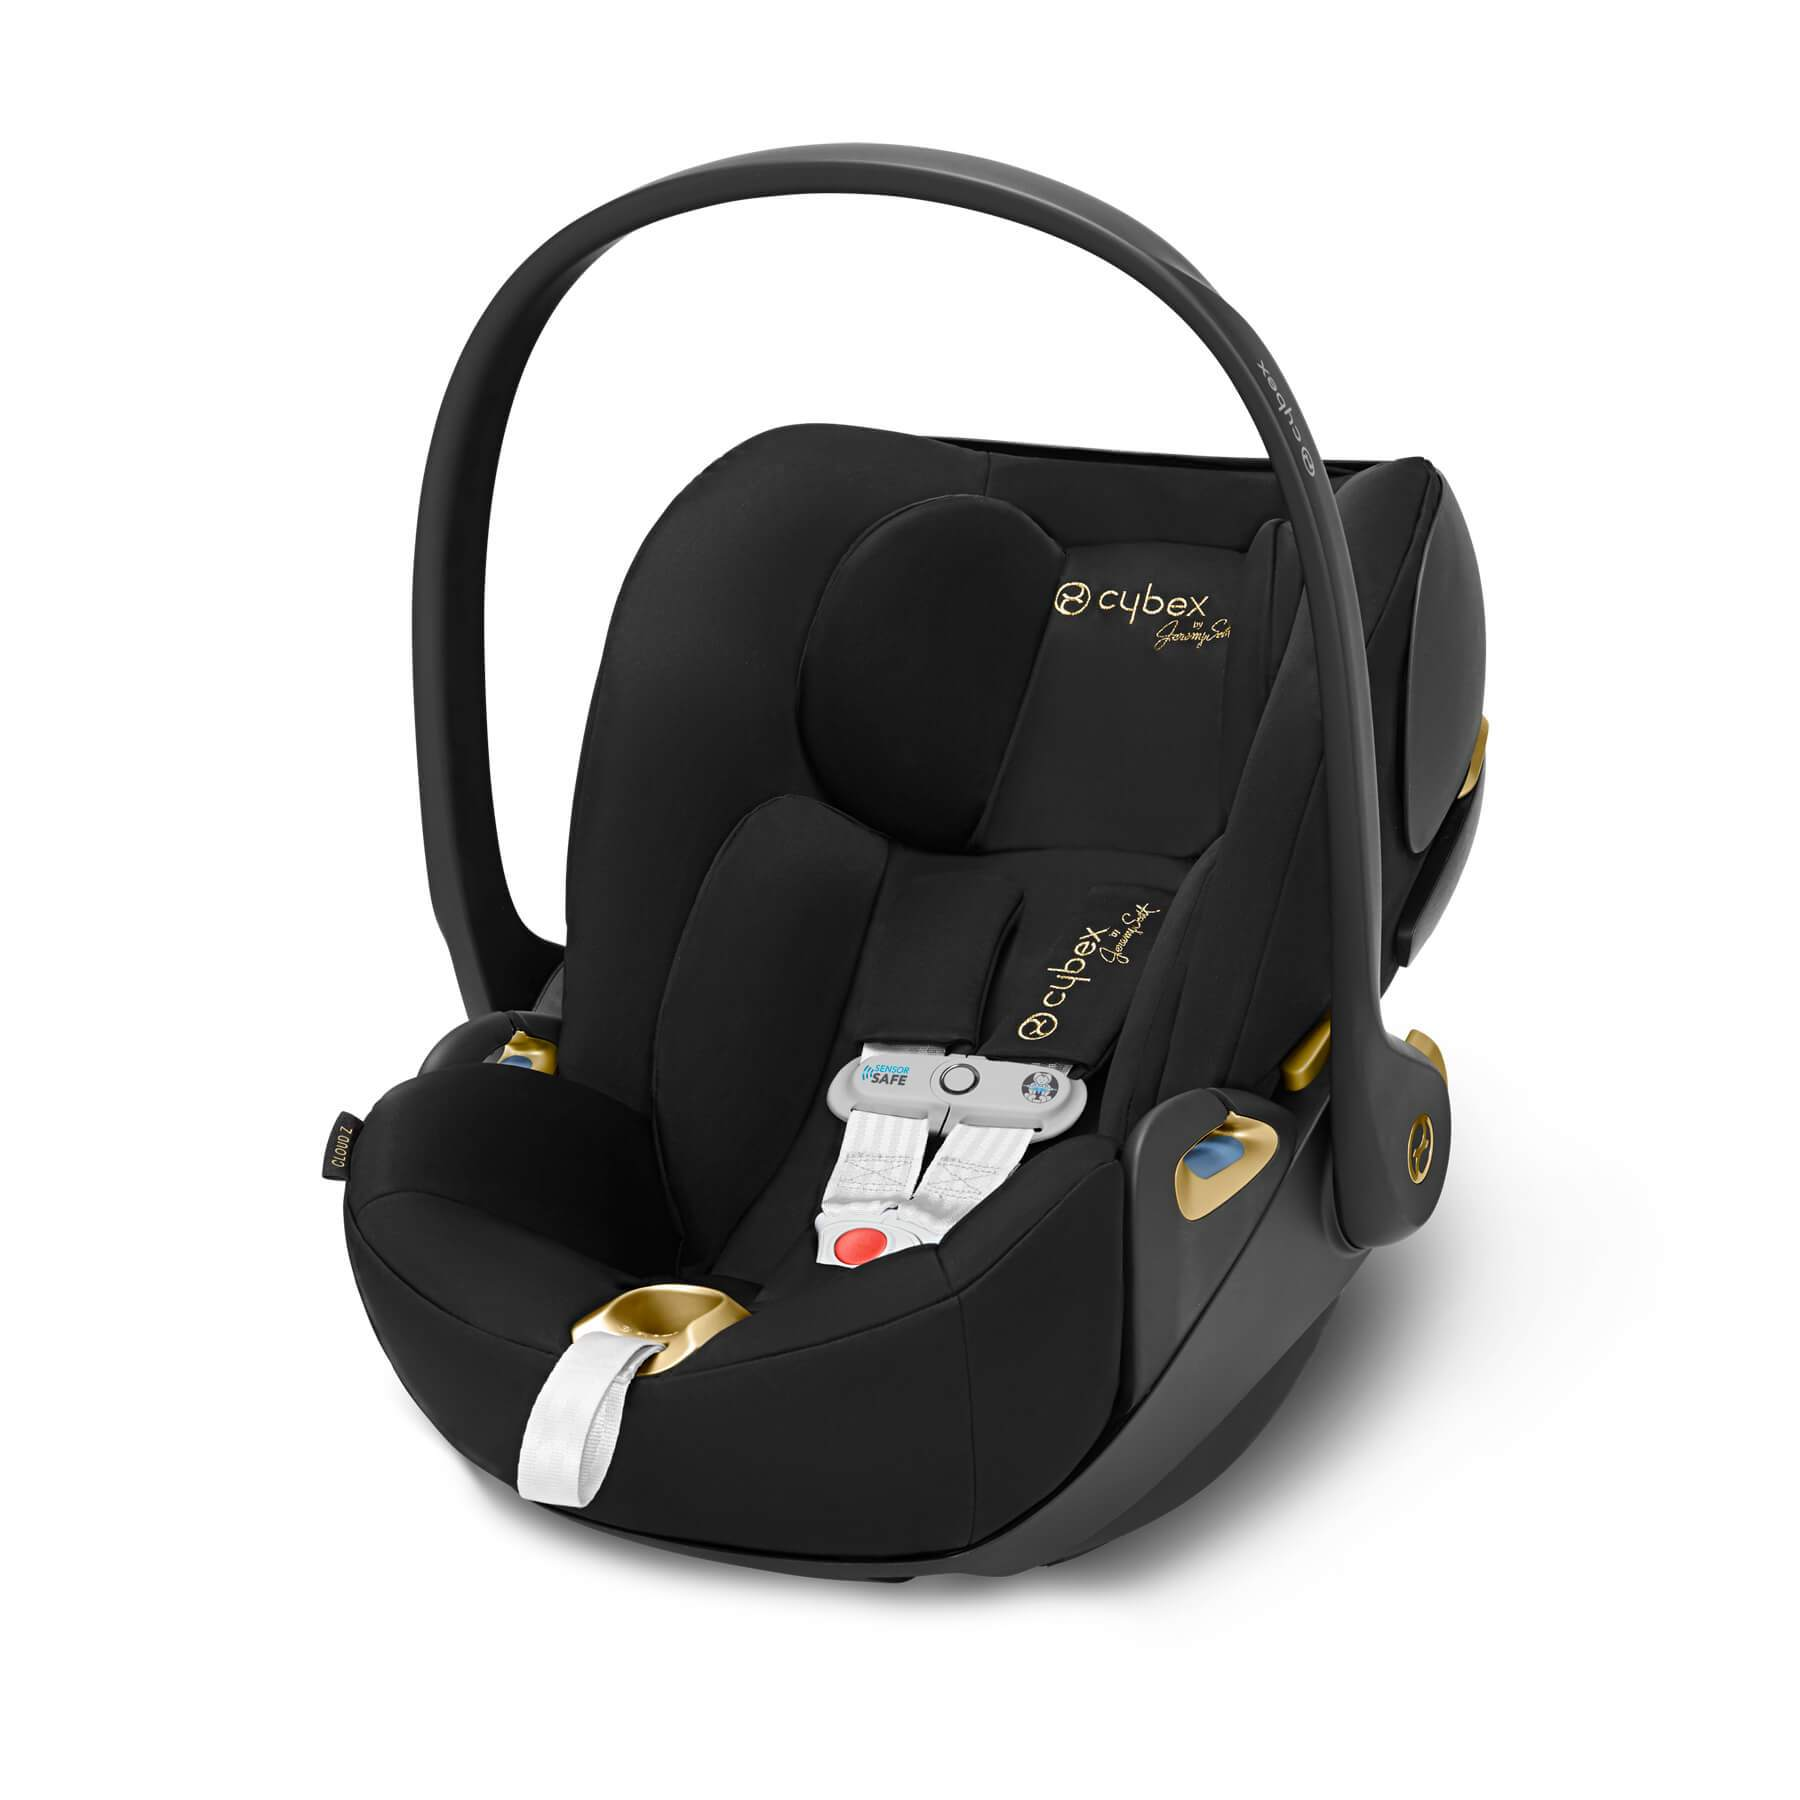 Cybex Cloud Z incl Sensor Safe Wings by Jeremy Scott